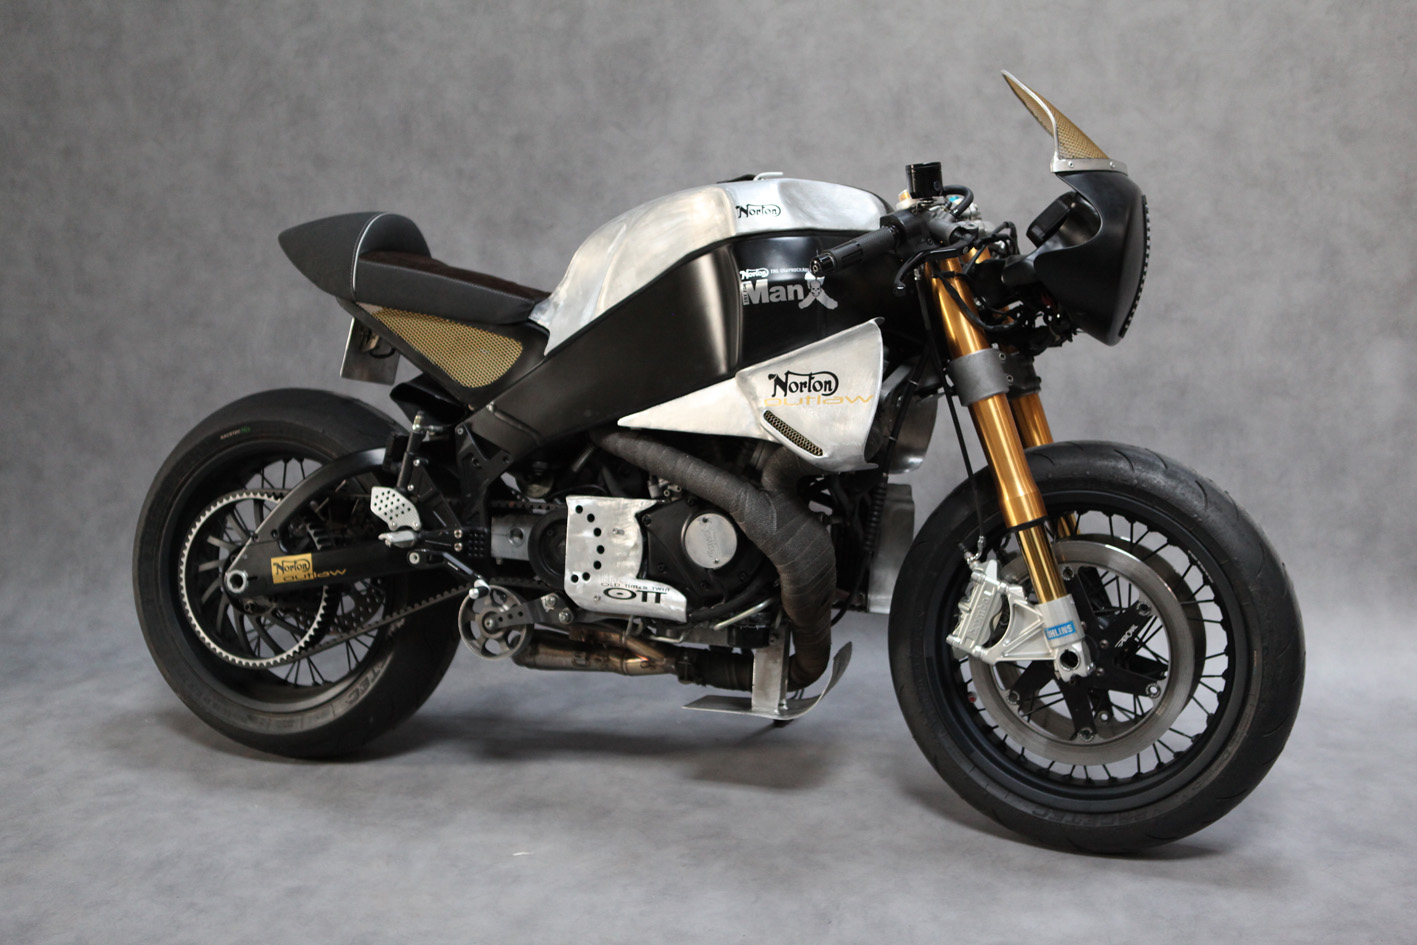 buell norton manx neoretro return of the cafe racers. Black Bedroom Furniture Sets. Home Design Ideas